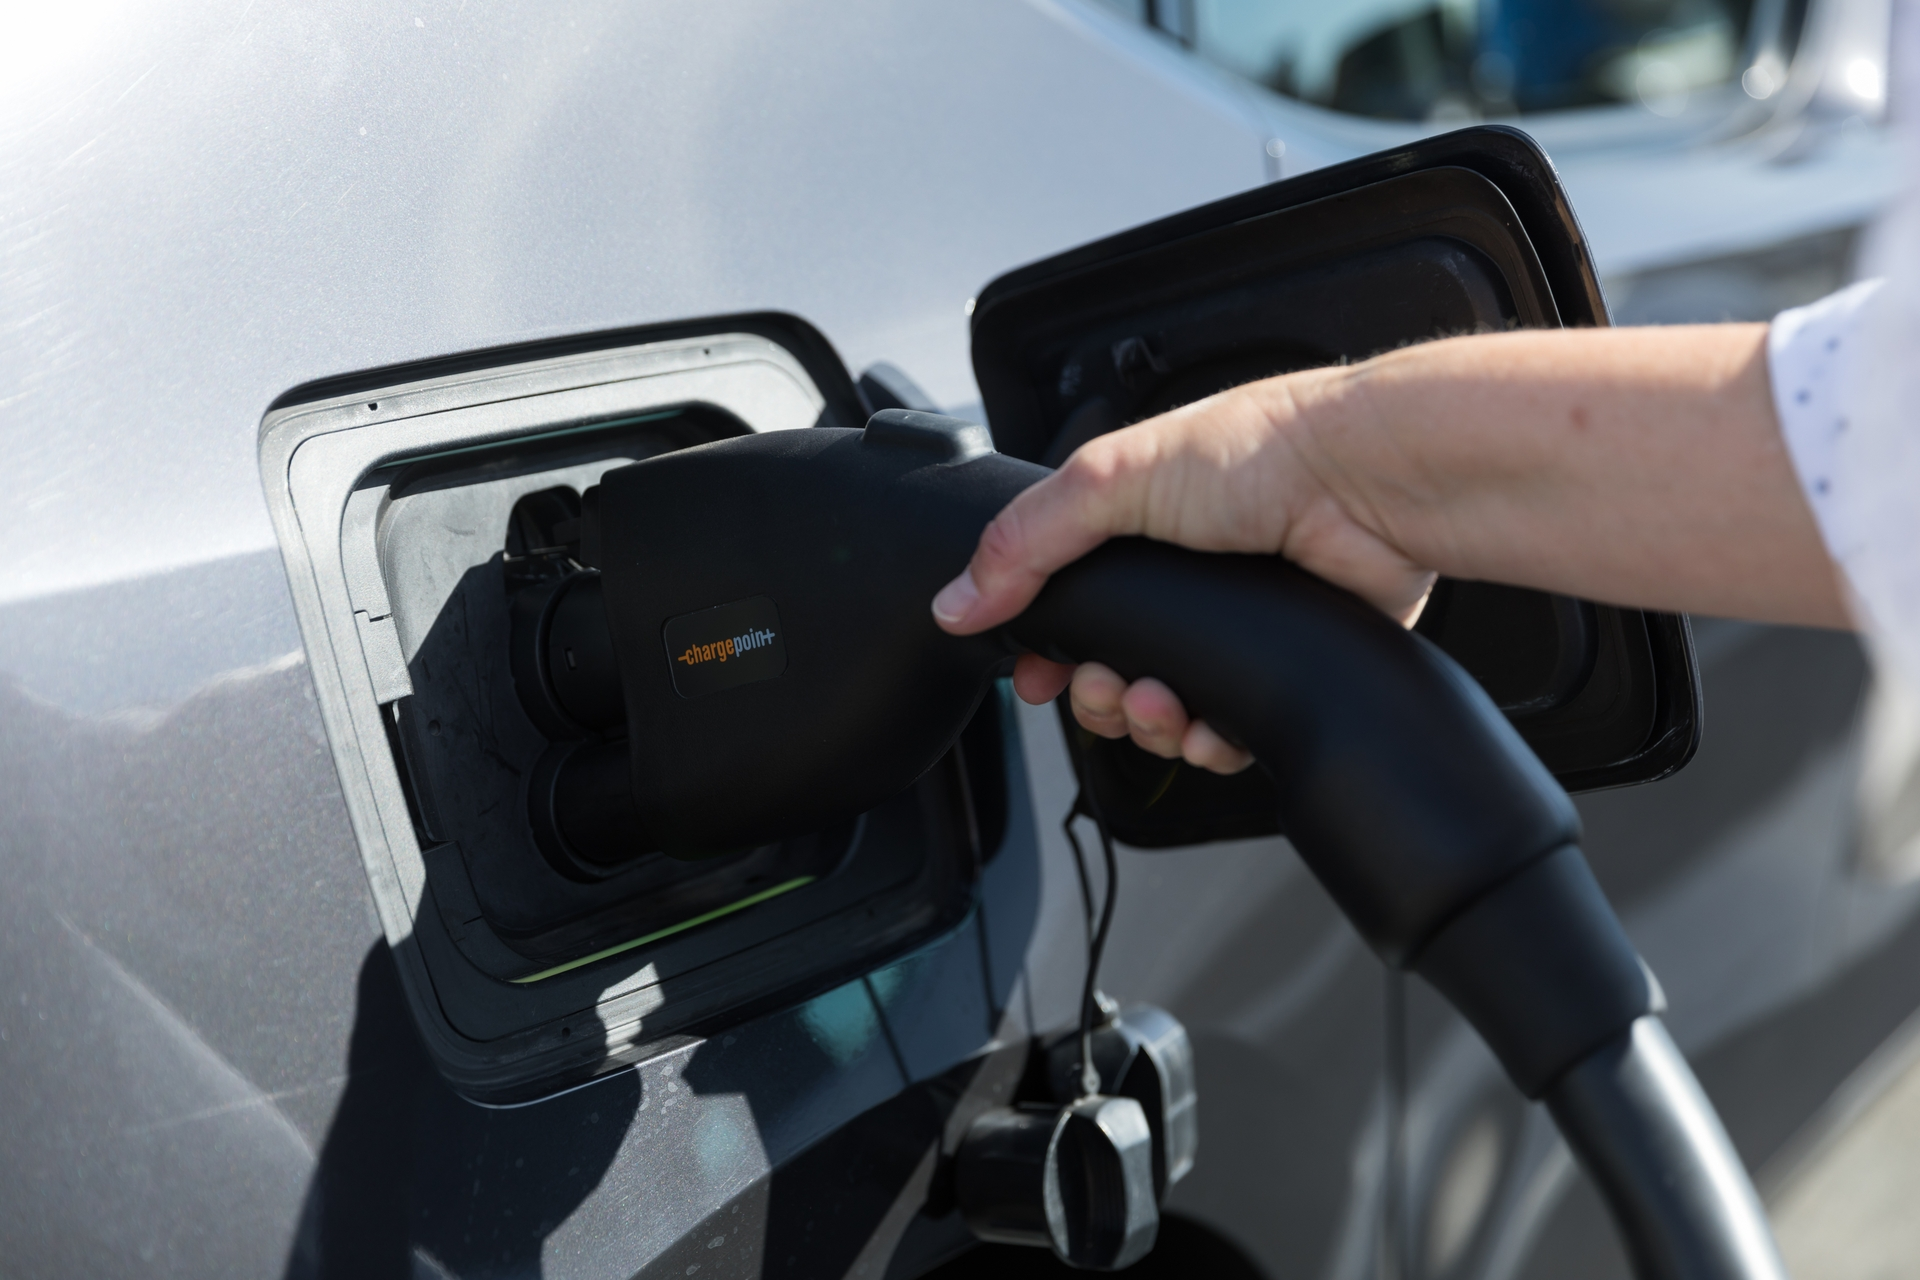 EV drivers can now plug into fast chargers while they shop and eat at H Mart Shopping Center in Garden Grove thanks to SCE's Charge Ready program.